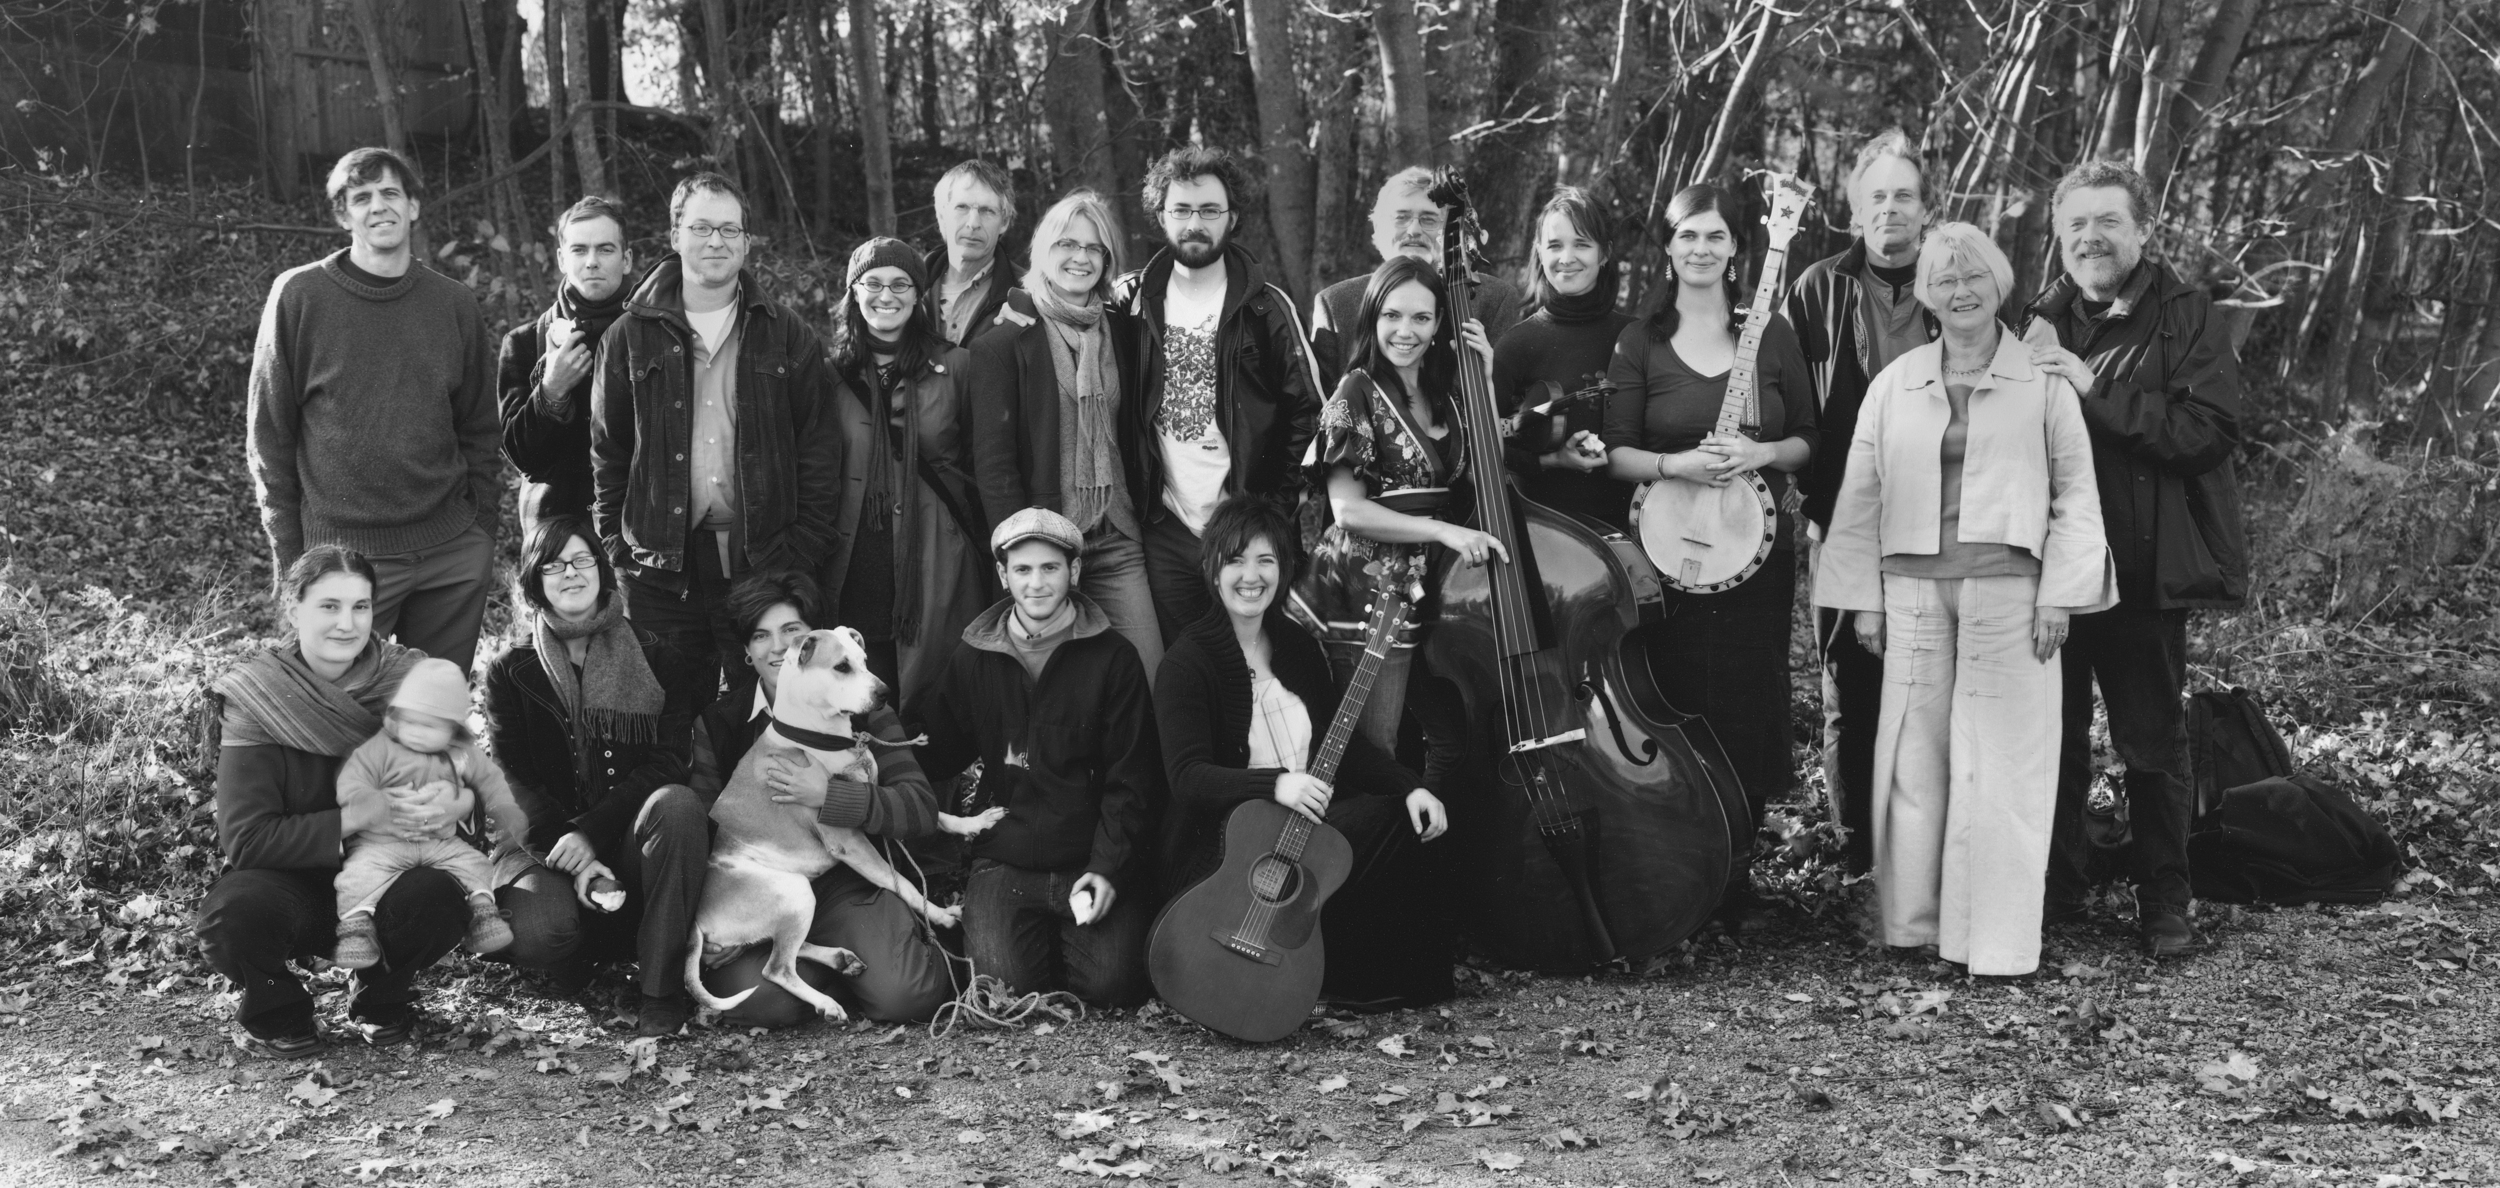 White Salt Mountain: A Gathering of Poets (Sackville, NB; 2008). Participating poets included Rob Winger (back row, third from the left), Anita Lahey (back row, fourth from the left), Amanda Jernigan (back row, sixth from the left), Peter Sanger (back row, just right of centre, behind the double bass), Allan Cooper (third from the right), and Harry Thurston (far right). The gathering was organized by Janna Graham (bottom row, third from the left, with the apple). Photograph by Thaddeus Holownia, http://www.anchoragepress.ca